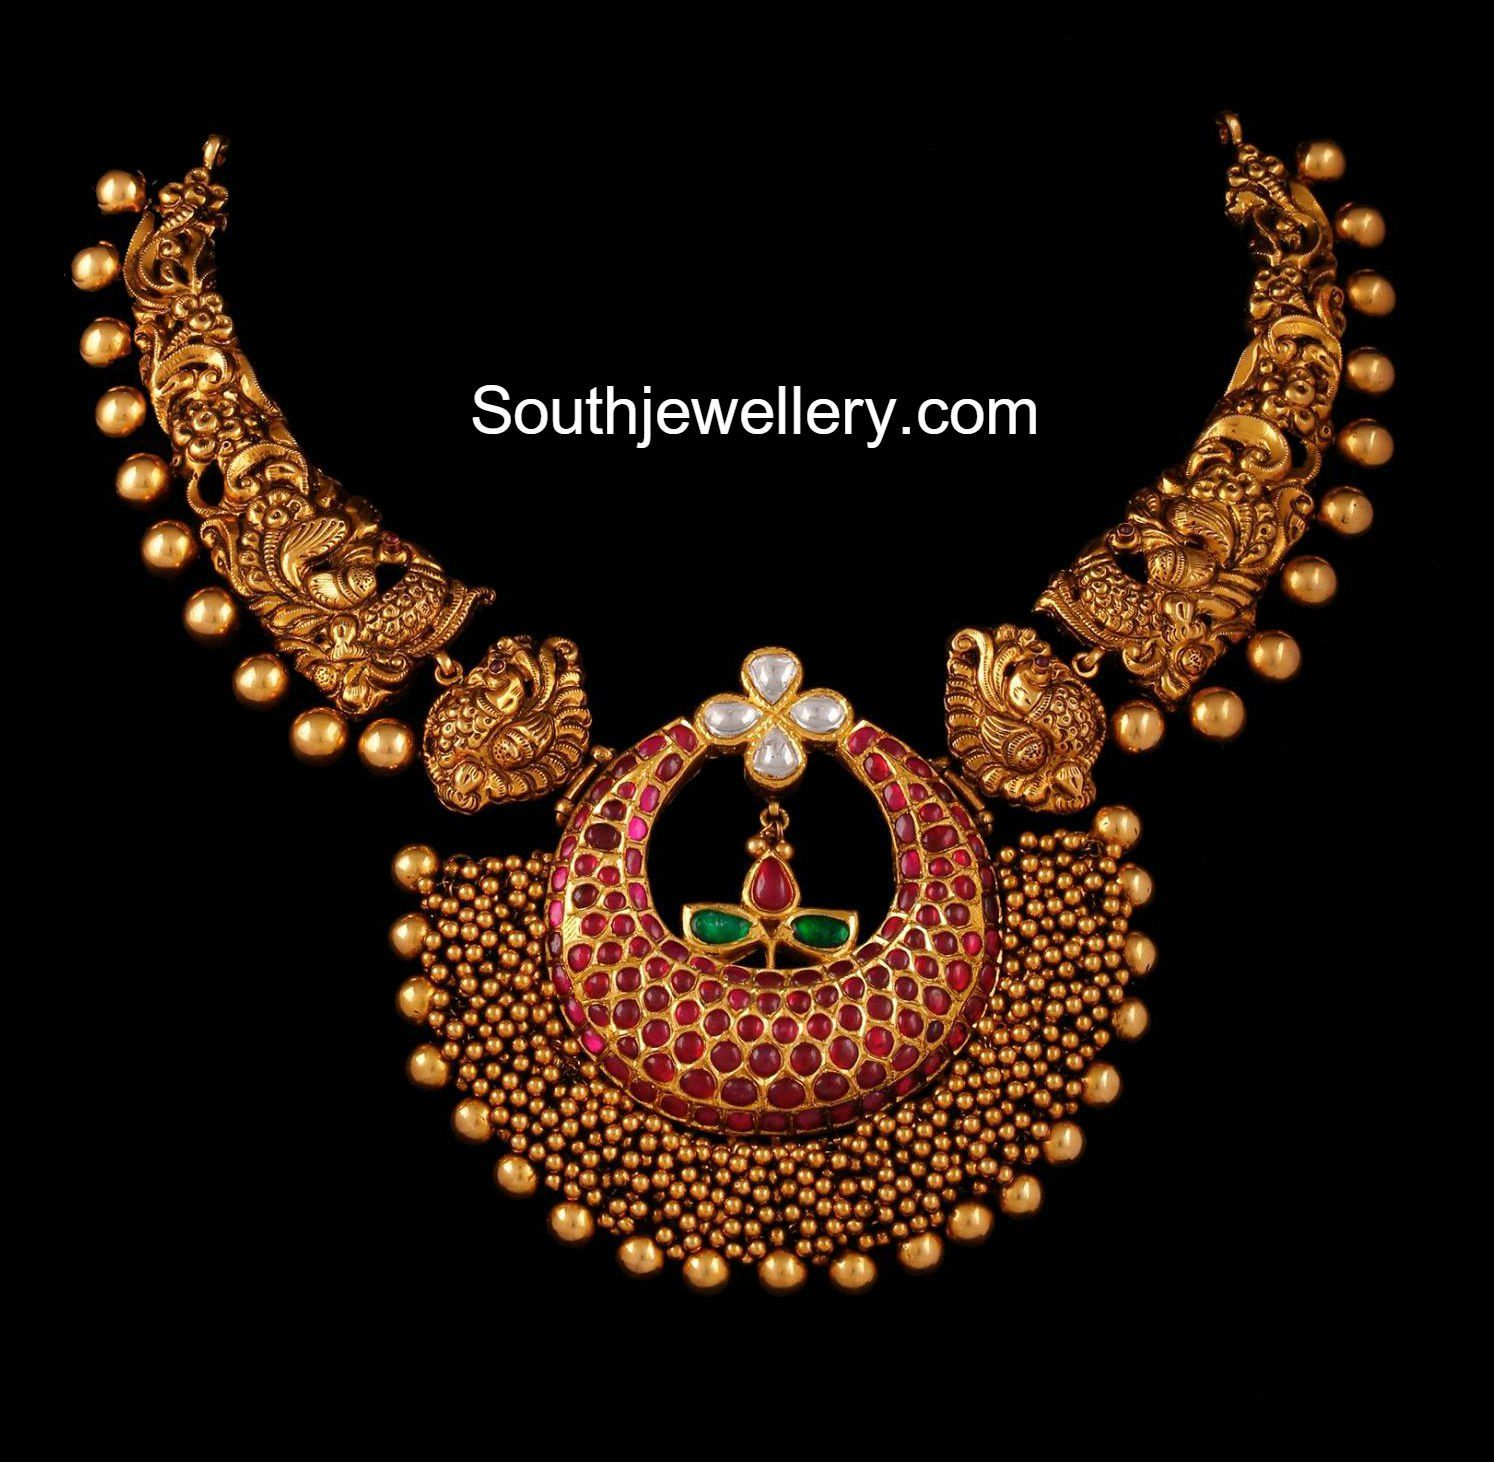 Latest gold necklace designs in grams pachi necklace latest jewellery - Peacock Nakshi Necklace With Ruby Gajjalu Pendant Photo